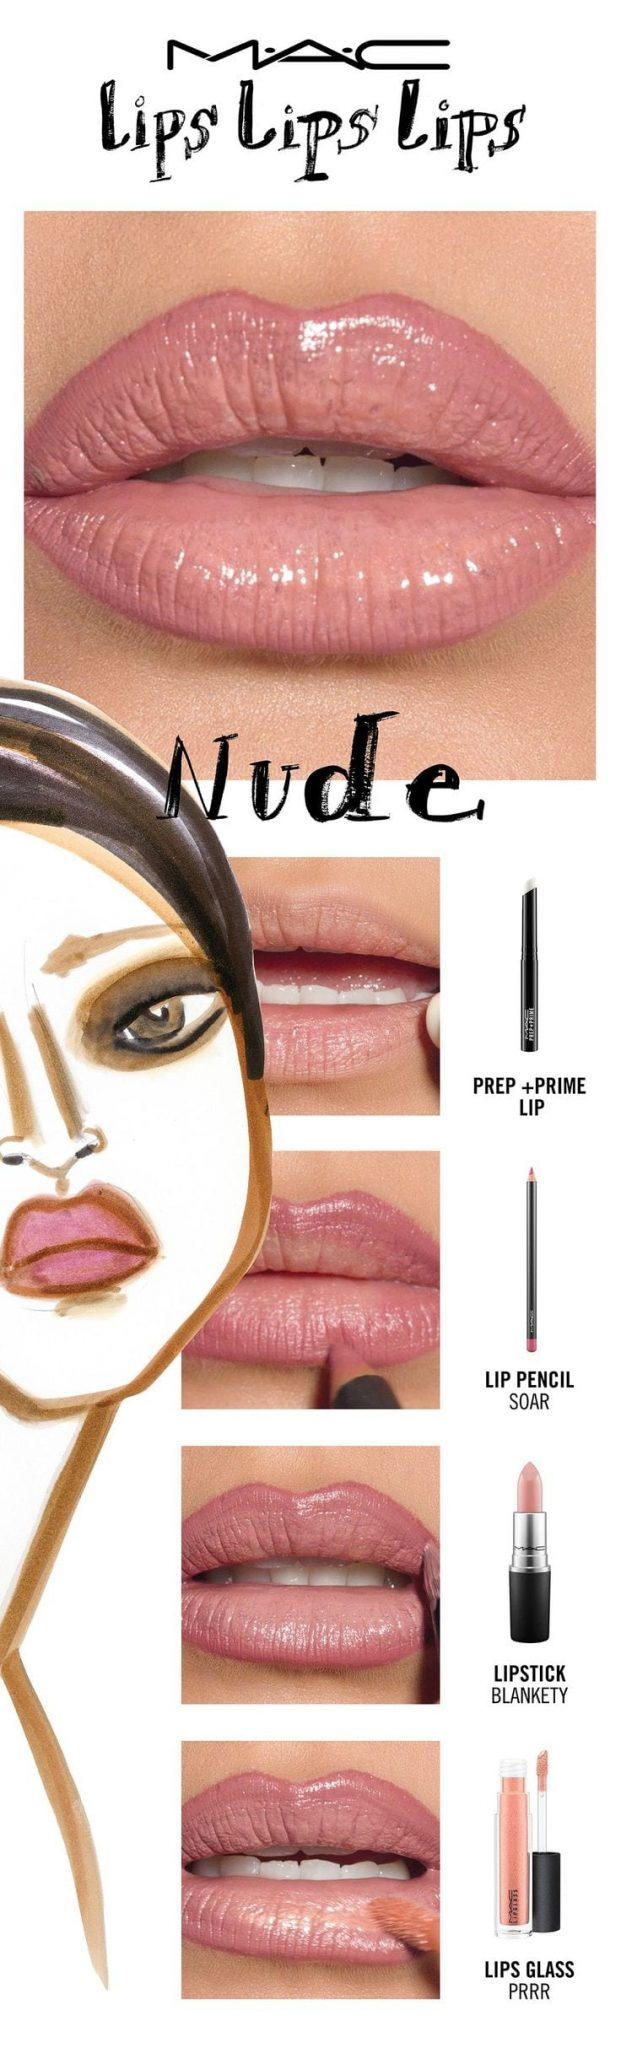 Go in the buff with the perfectly overdrawn look of The Instagram Nude! We've got nude lip ideas for every skin tone. Try a lip trend, then make it your own! Your choice. Your creation. Your trend.  Created by…